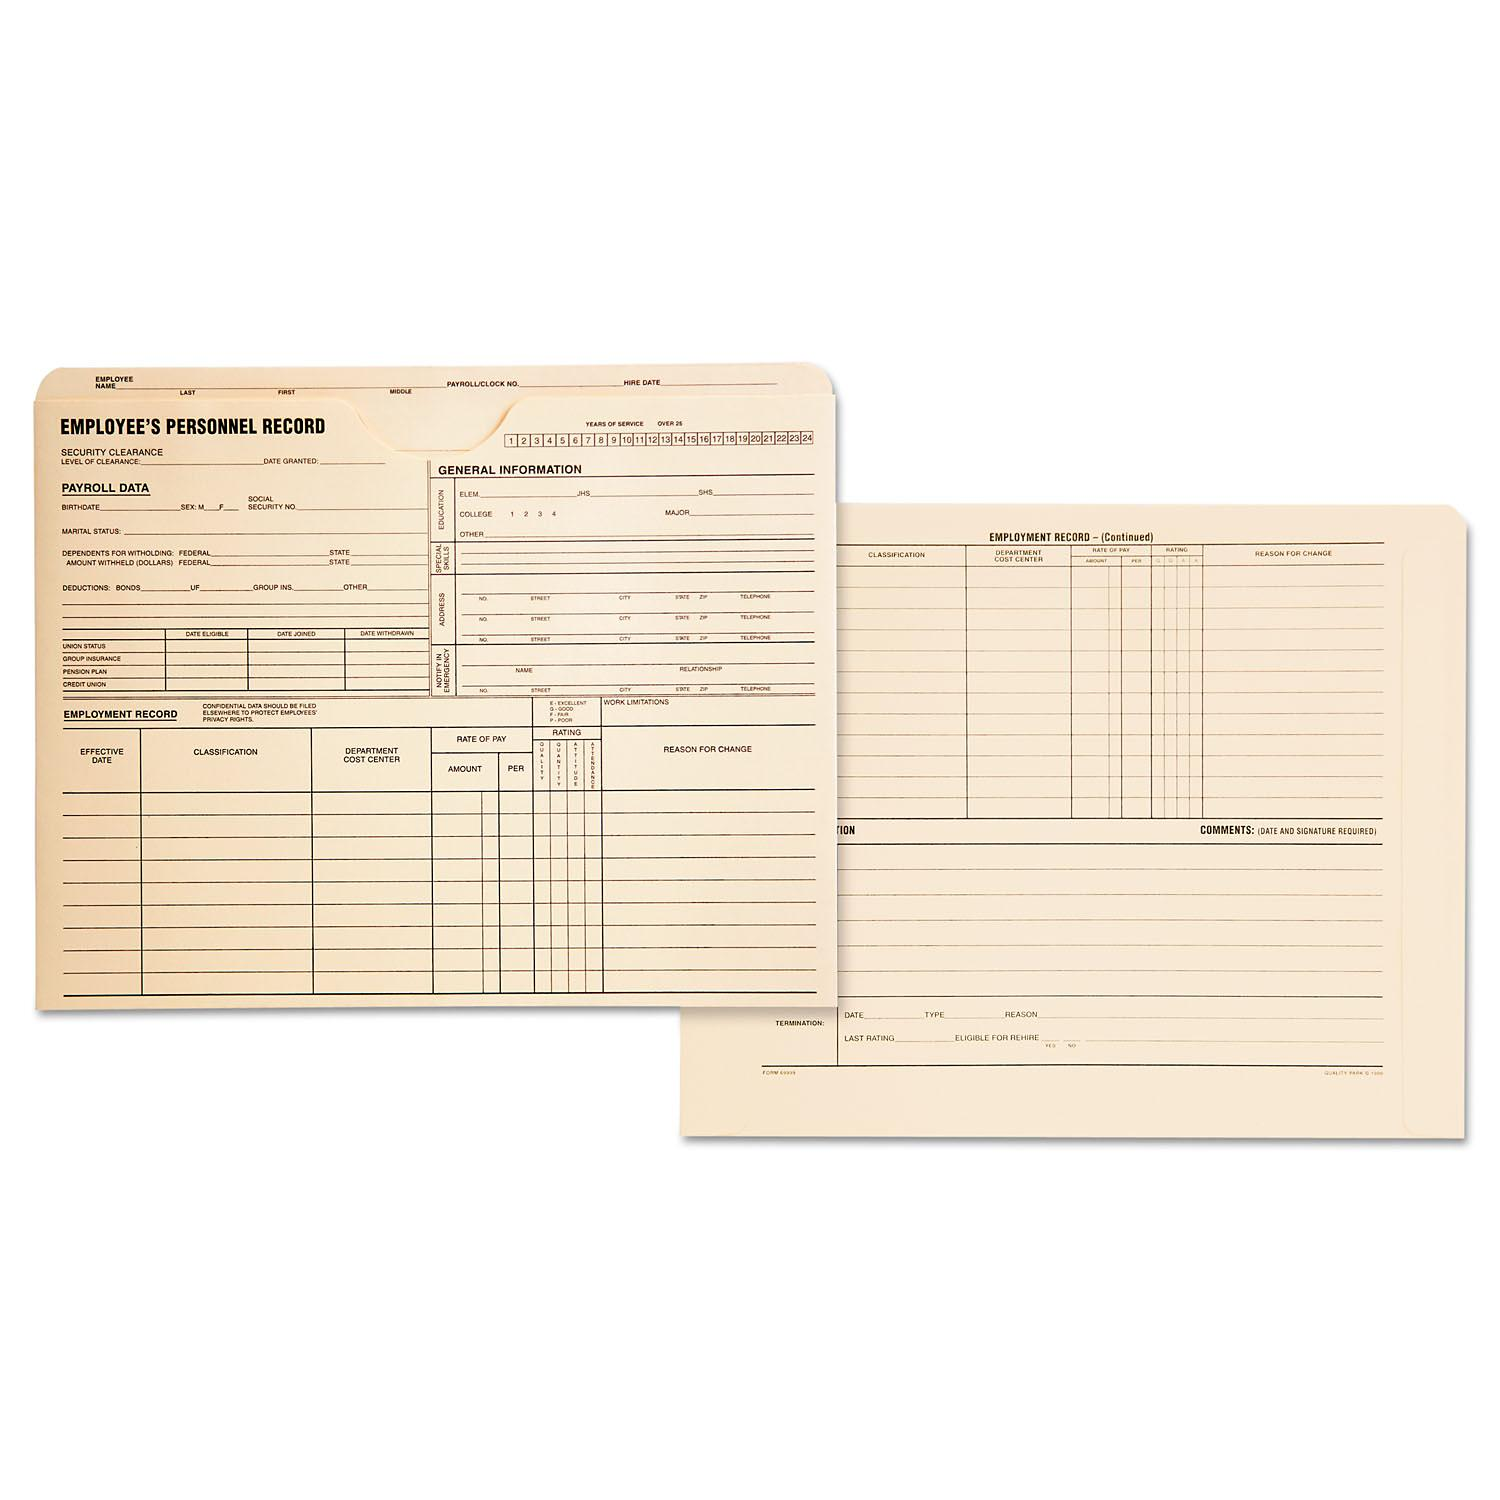 2 X Pack of 100 Flat Expansion Quality Park Personnel Record Jacket 9-1//2 x 11-3//4 Inches per Box QUA69999